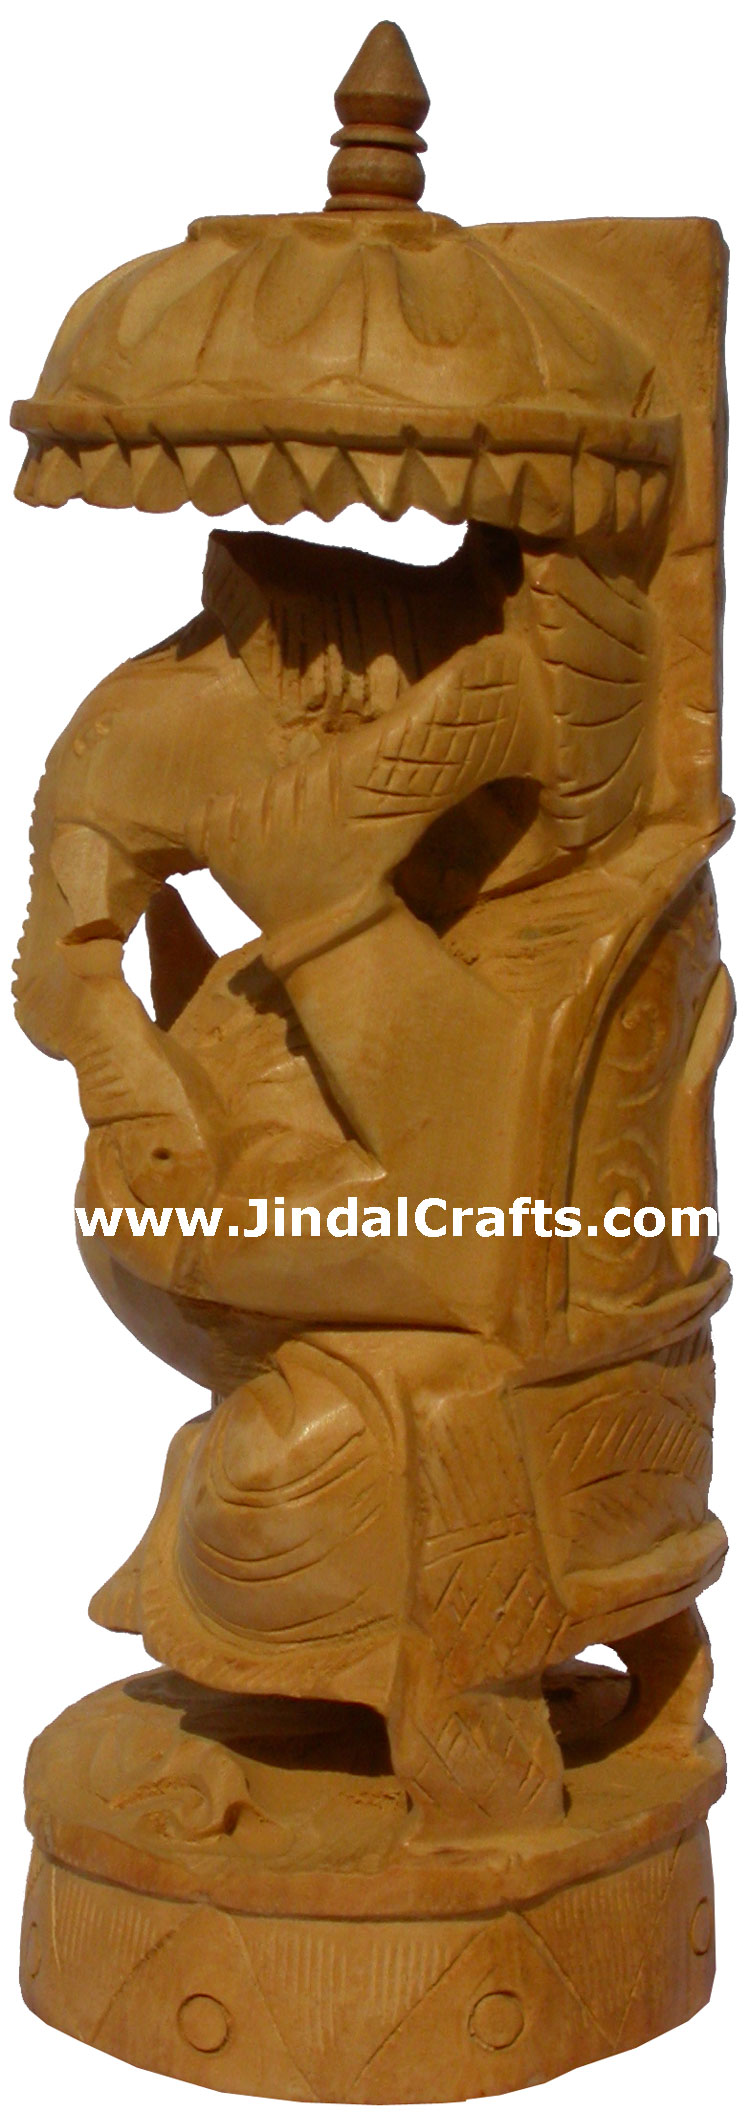 Wood Sculpture Hand Carved Umbrella Ganesh Statuette